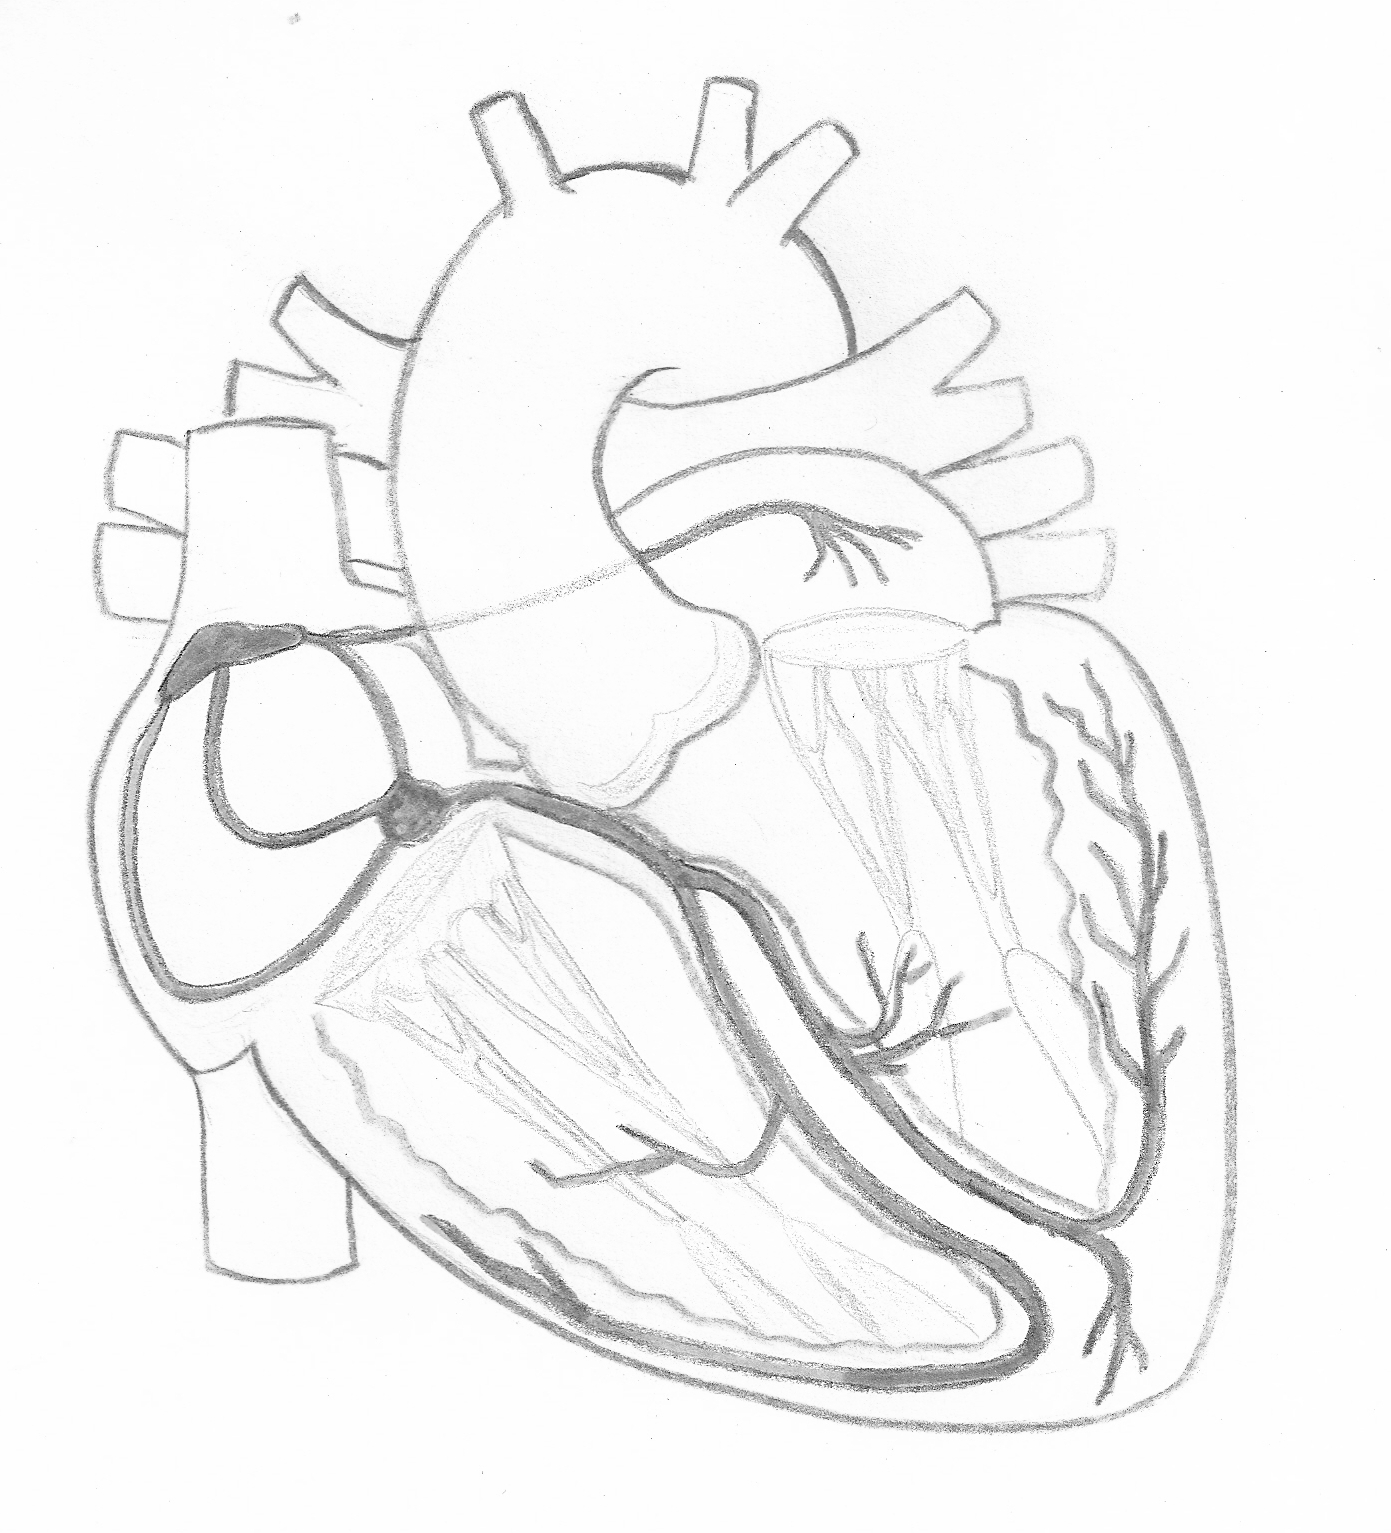 Cardiac Conduction System Illustration